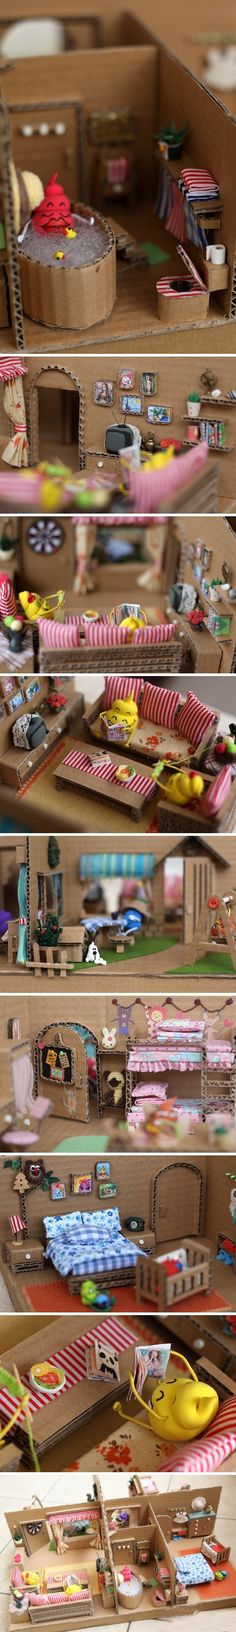 Adorable dollhouse made from cardboard boxes and odds and ends.